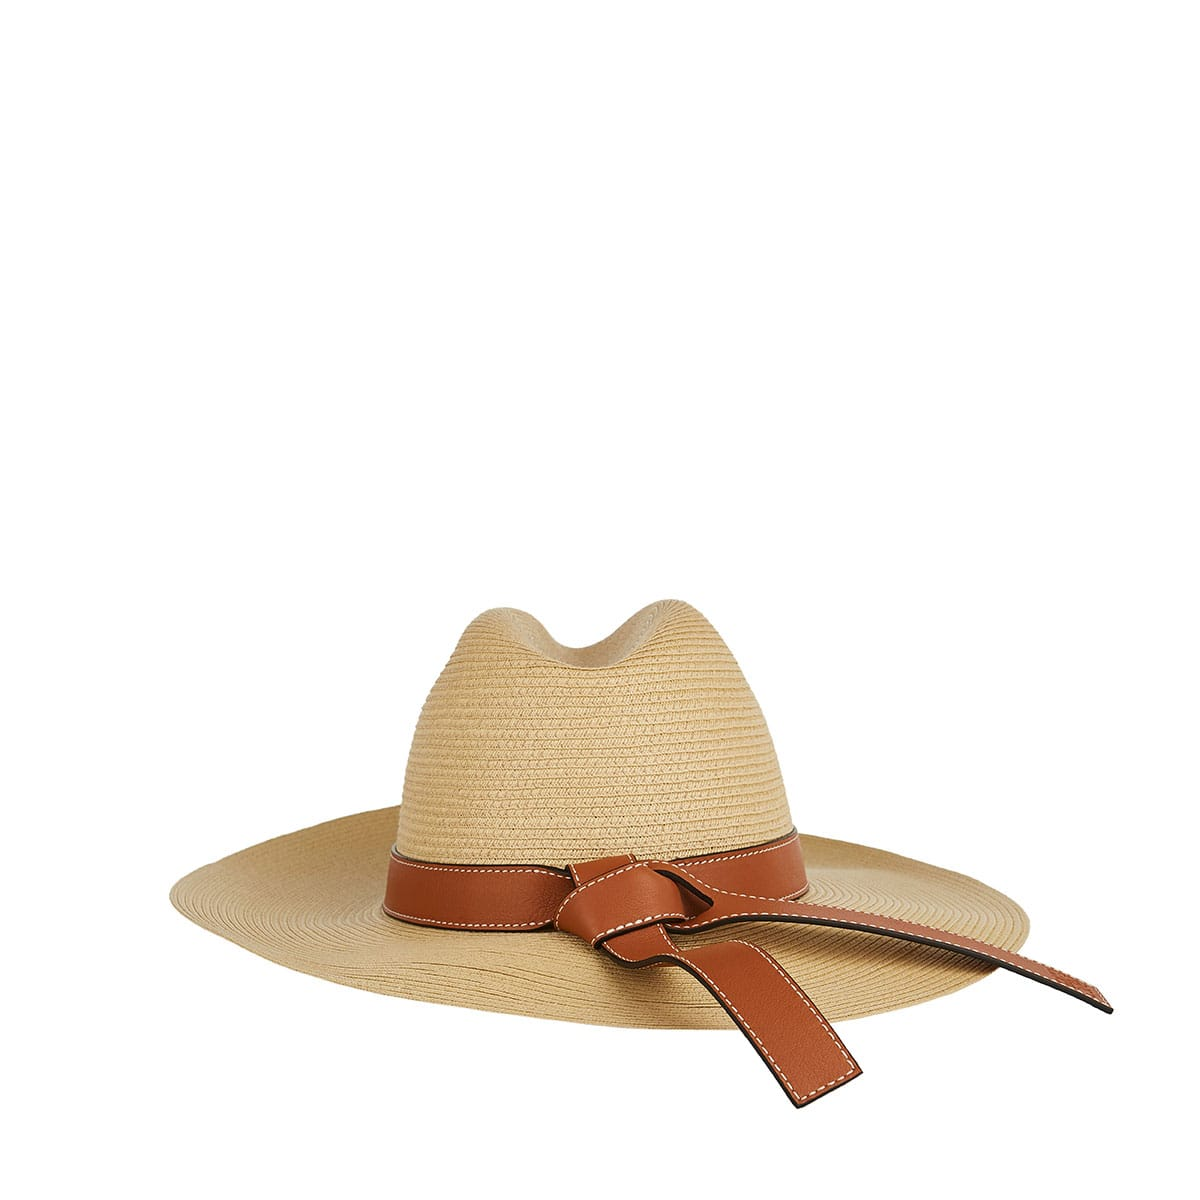 Leather-trimmed woven hat